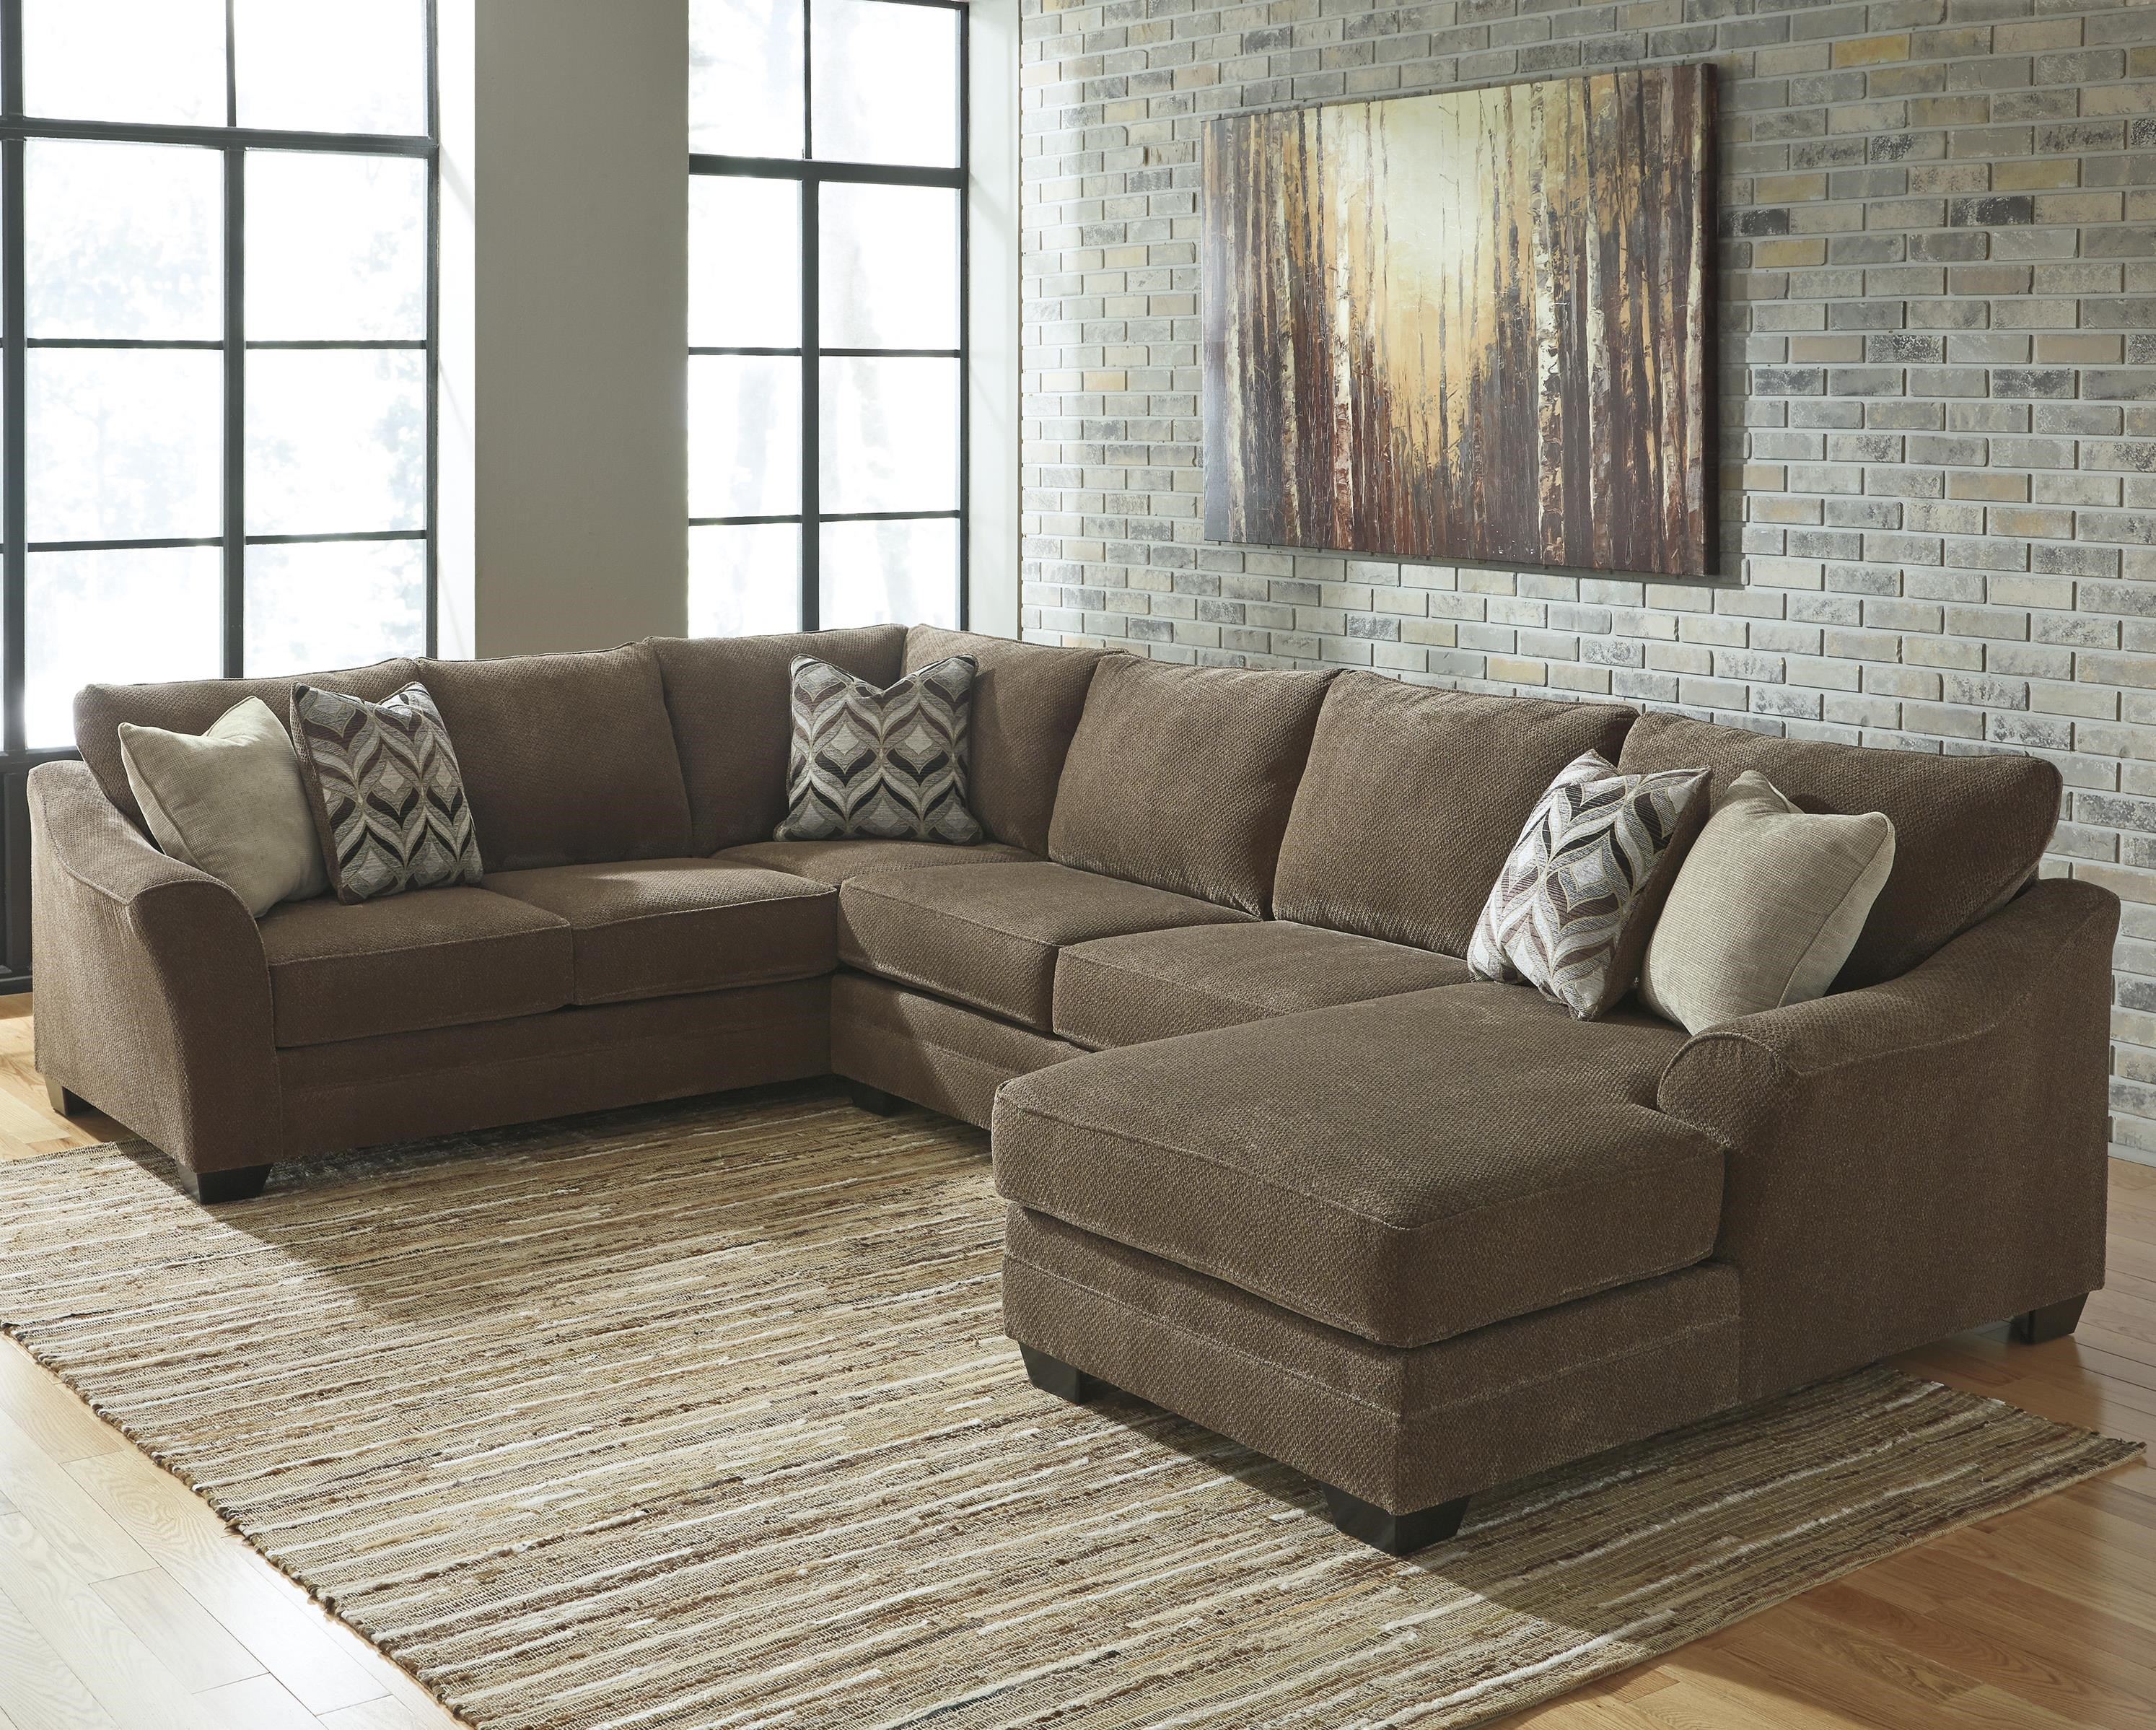 Benchcraft Justyna Contemporary 3 Piece Sectional With Right Chaise   John  V Schultz Furniture   Sectional Sofas